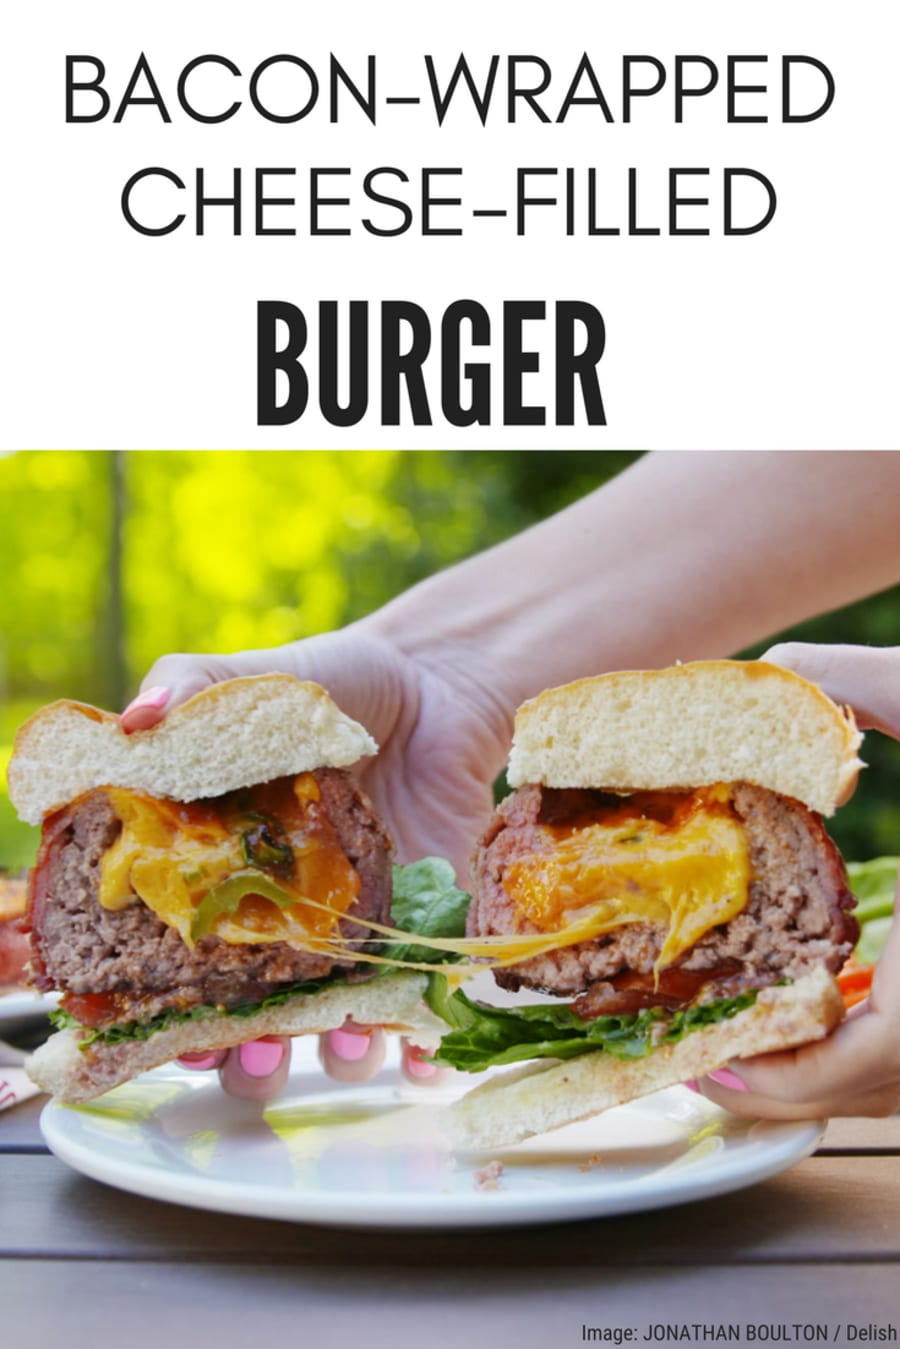 This Burger Has A Bacon-Wrapped, Cheese-Filled